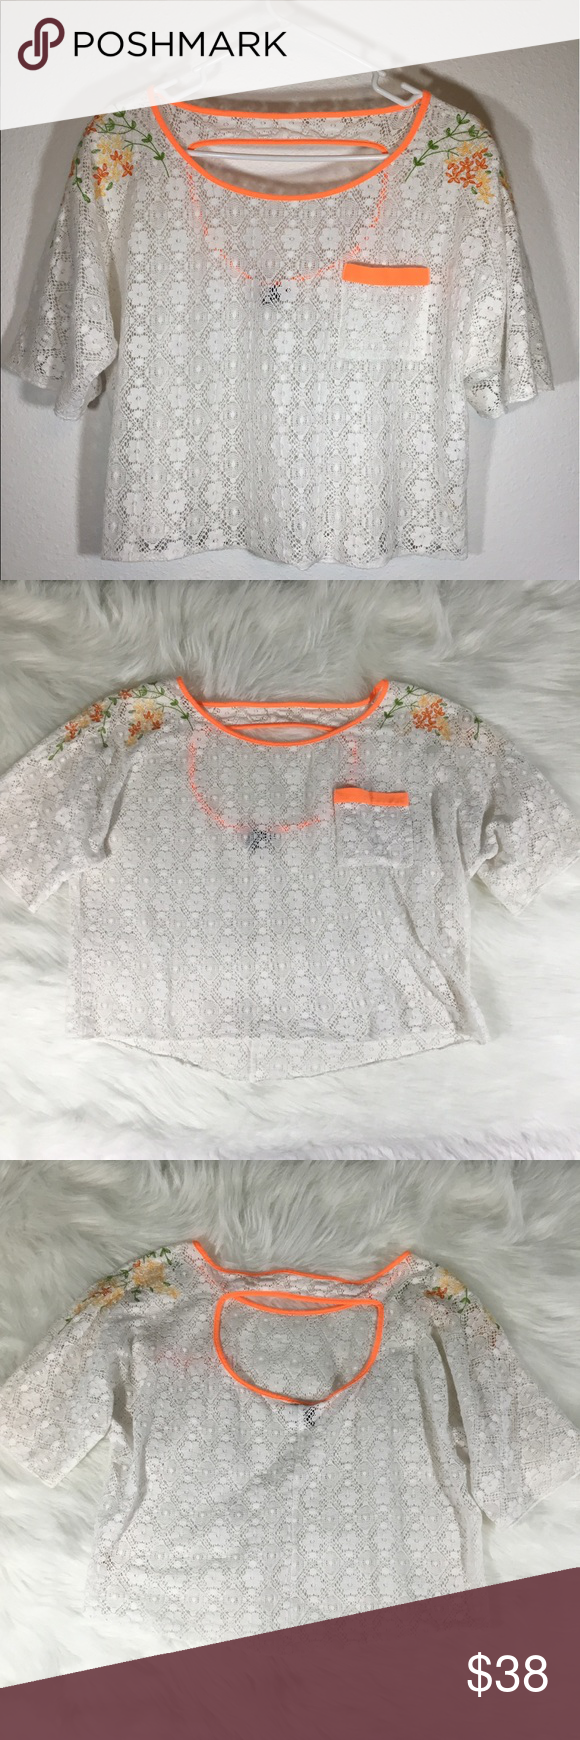 Free People Medium White Lace Top With Flowers